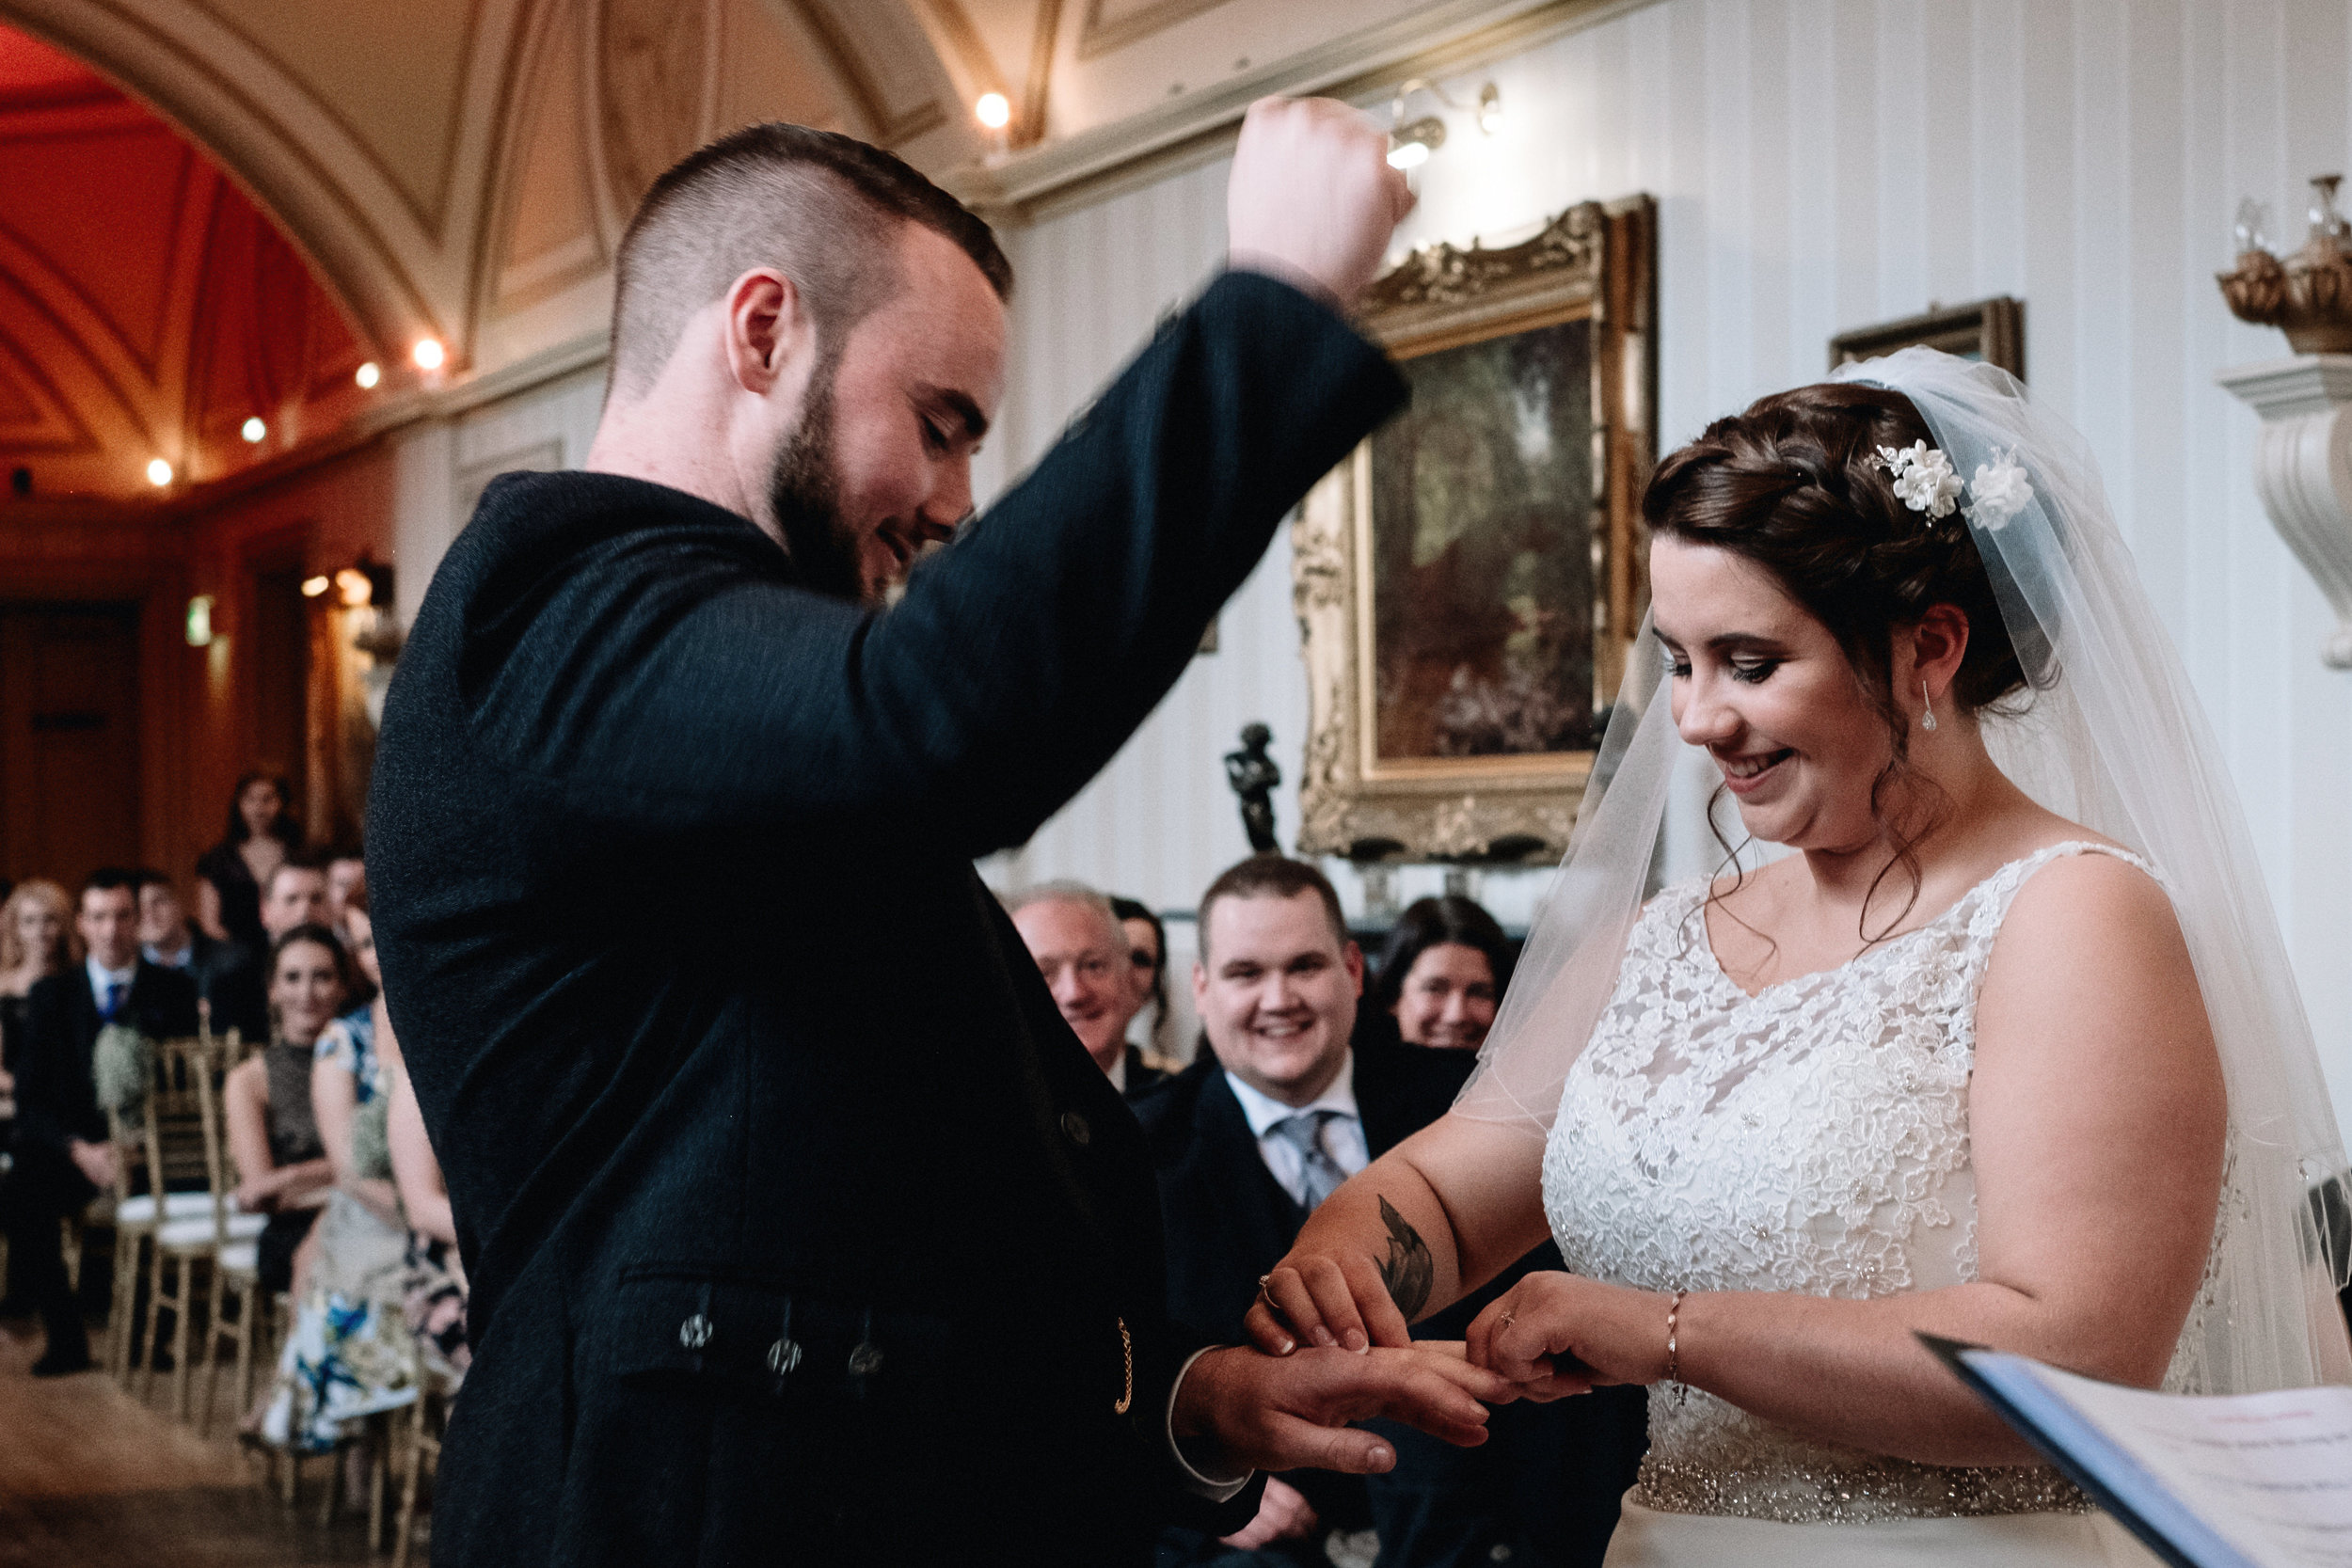 Groom fist punches the air